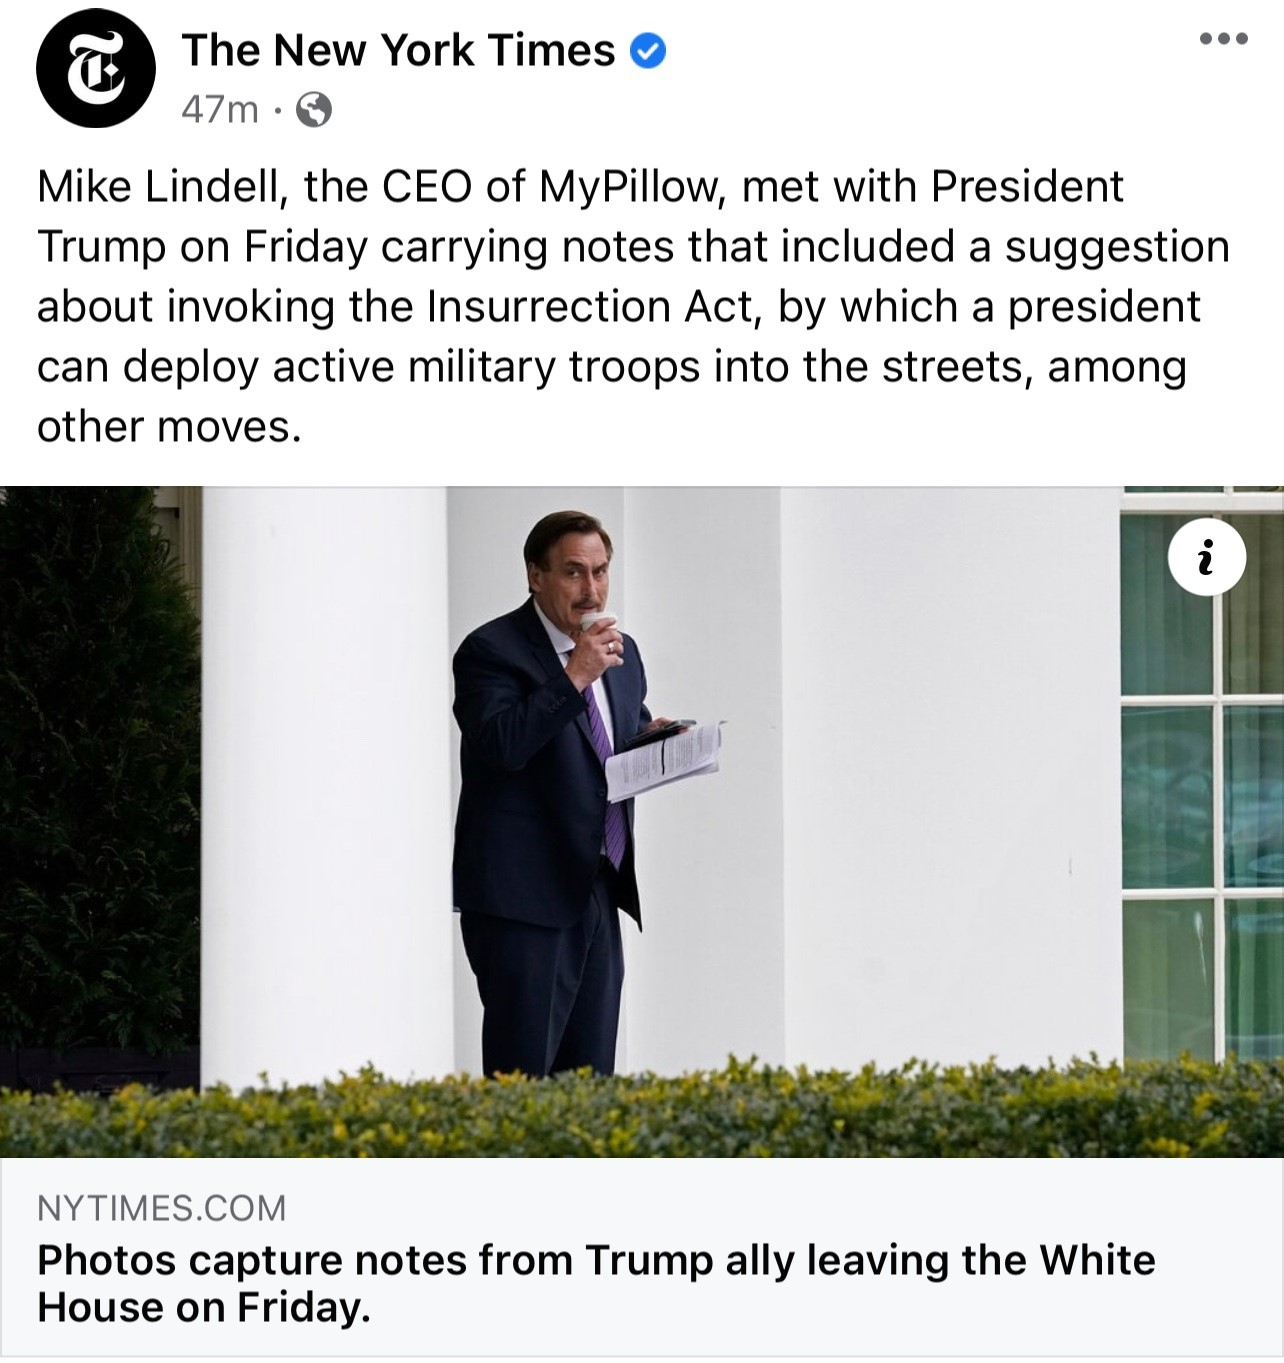 Mike Lindell Visits Trump in White House – Then Media Captures Pictures of His Notes to President Referring to Crimes and Insurrection Act Mr-Pillow-Notes-3